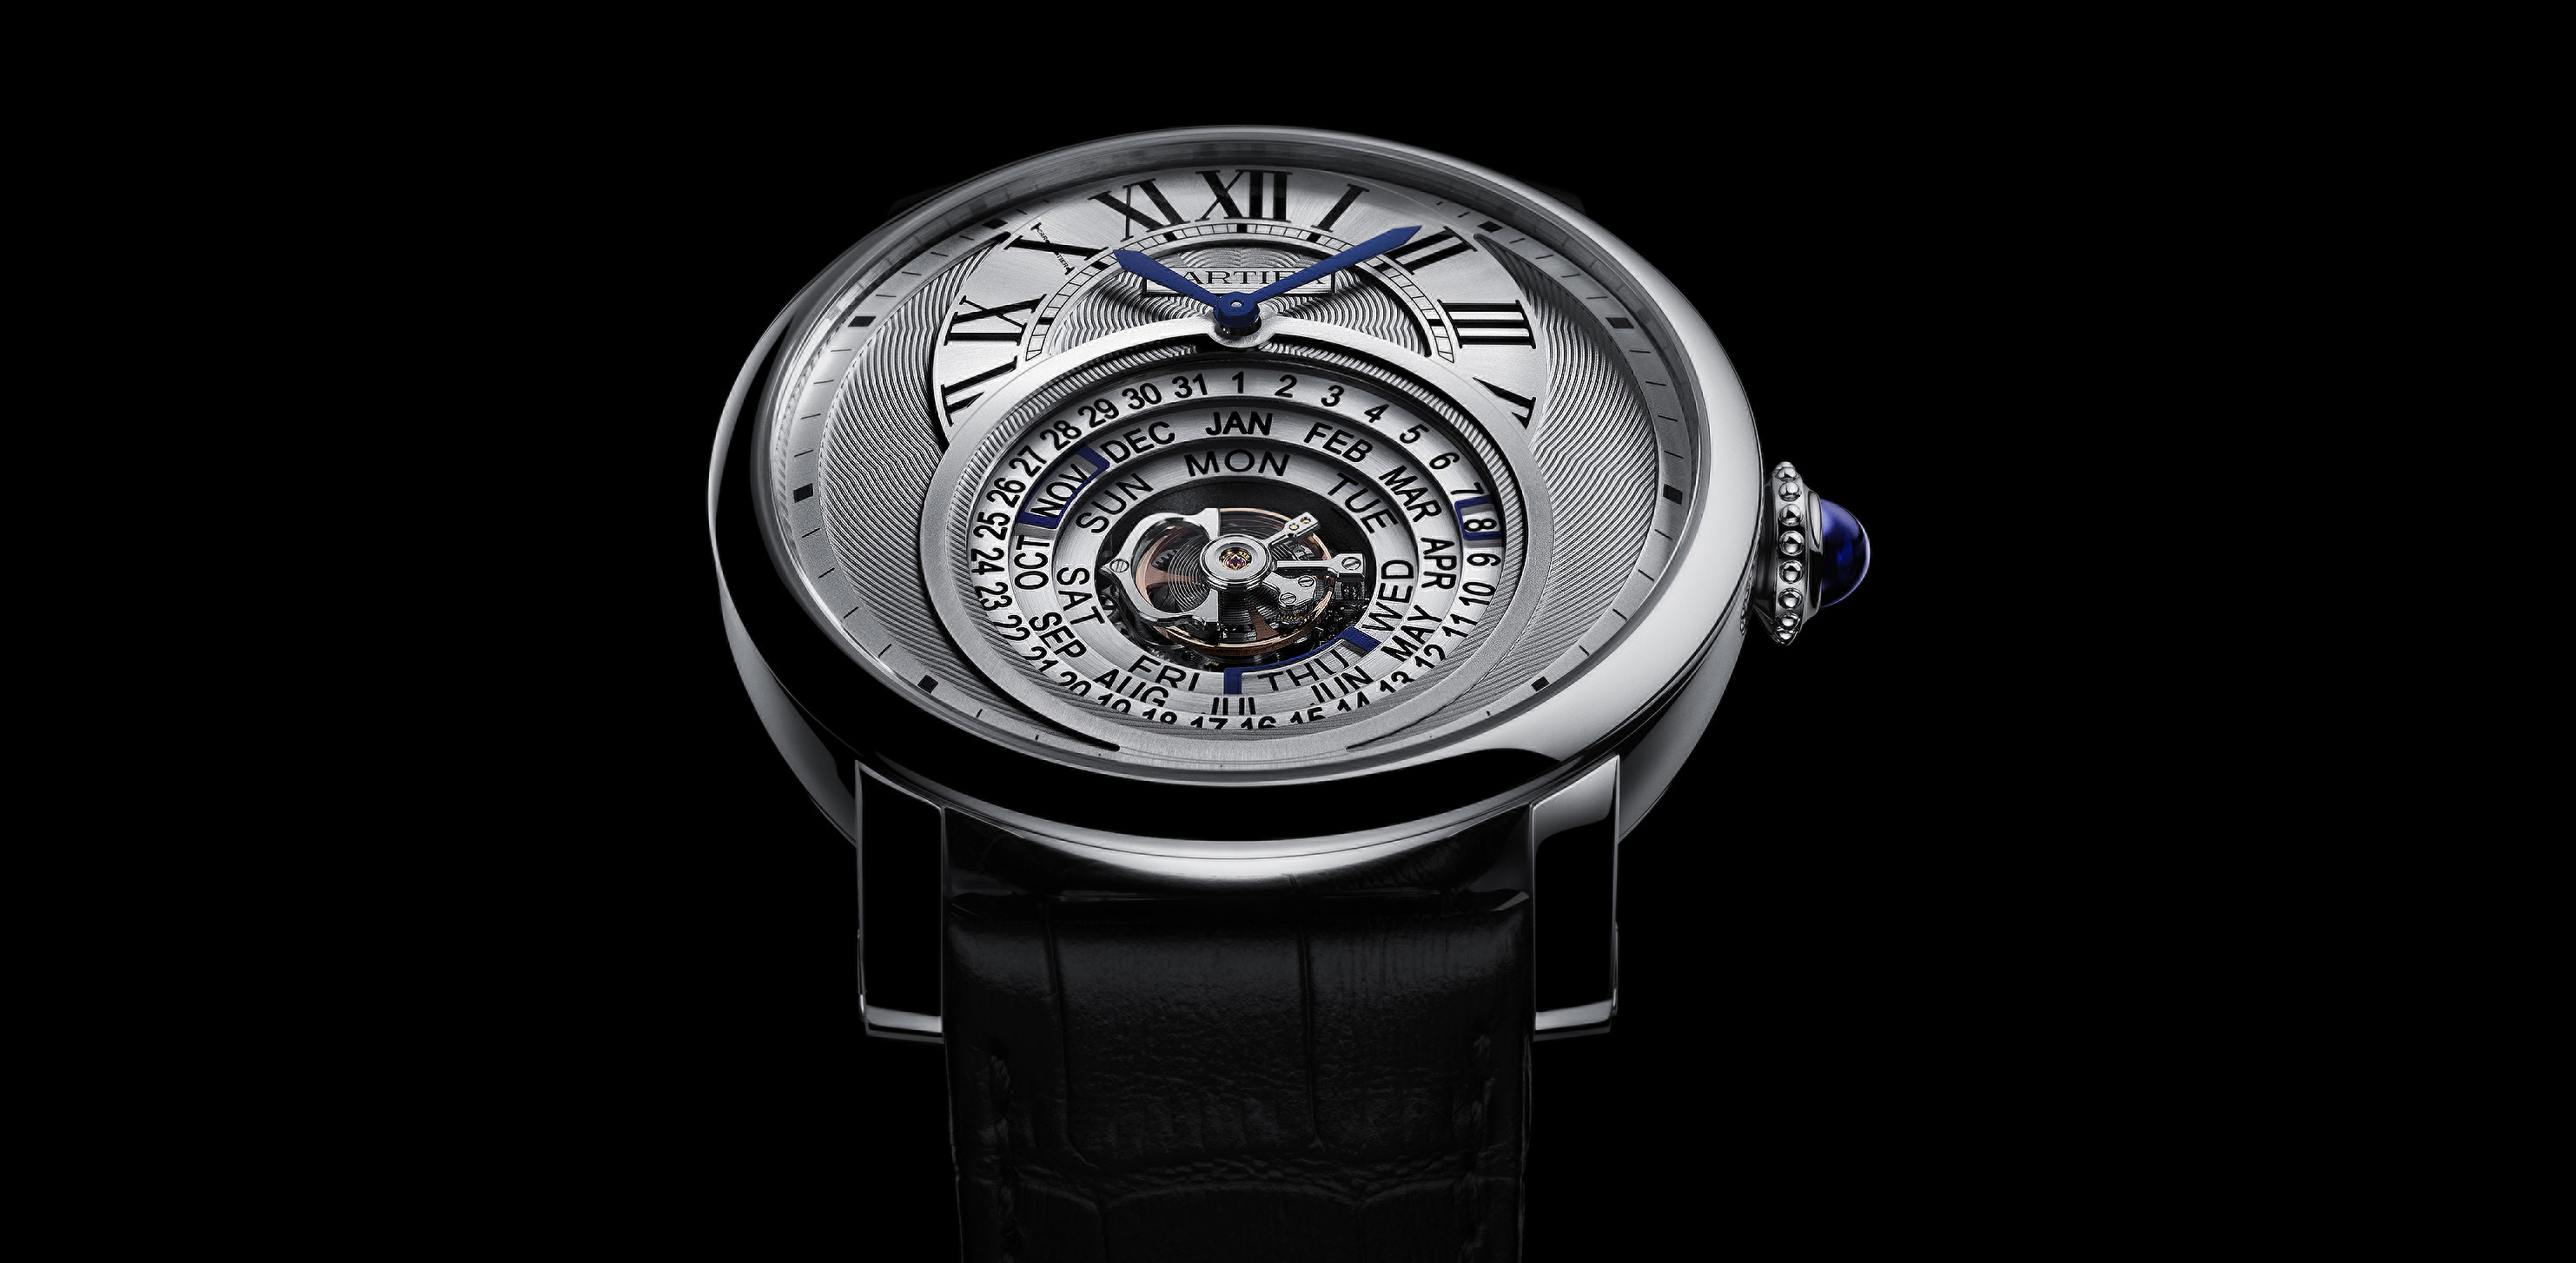 10 Most Expensive Cartier Watches in the World